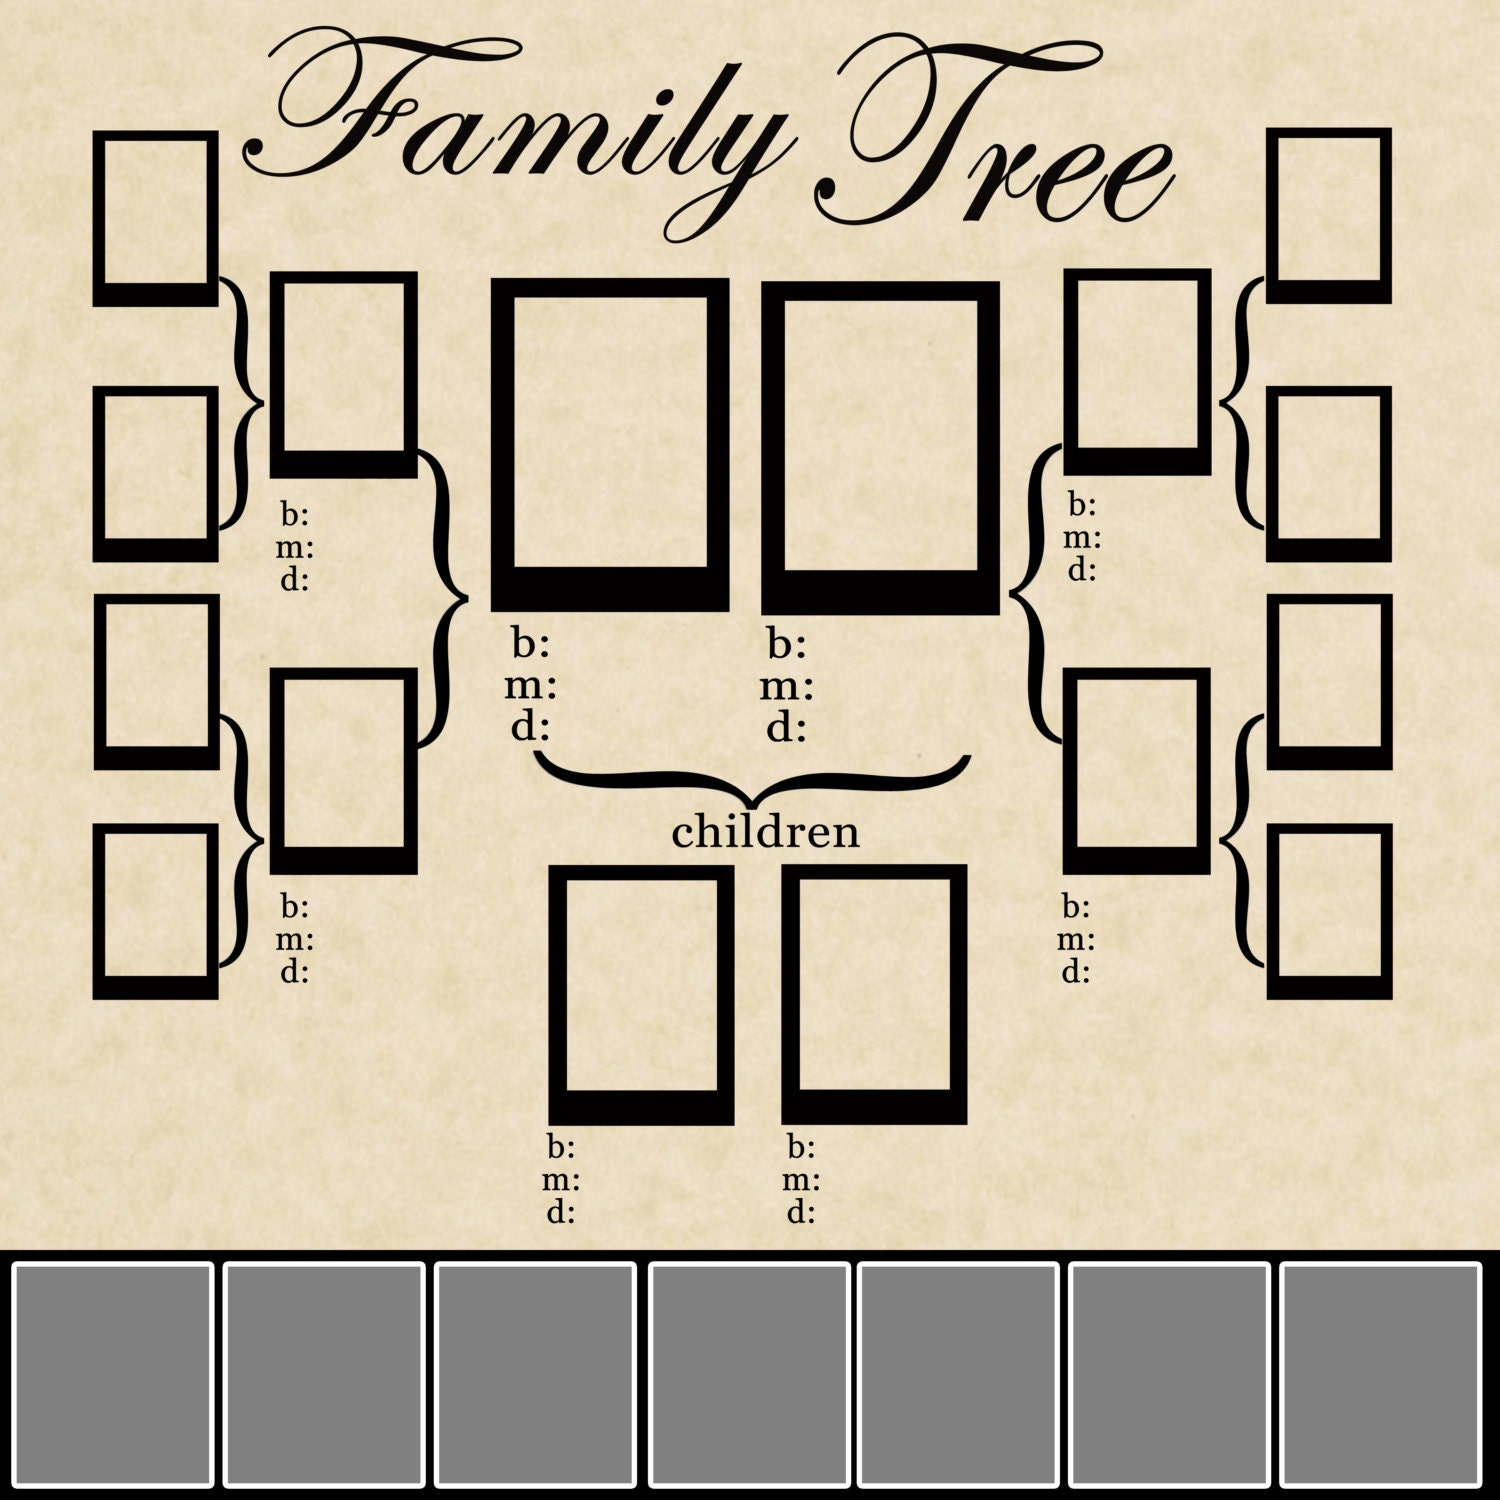 genealogy templates for family trees - family tree template family tree template psd